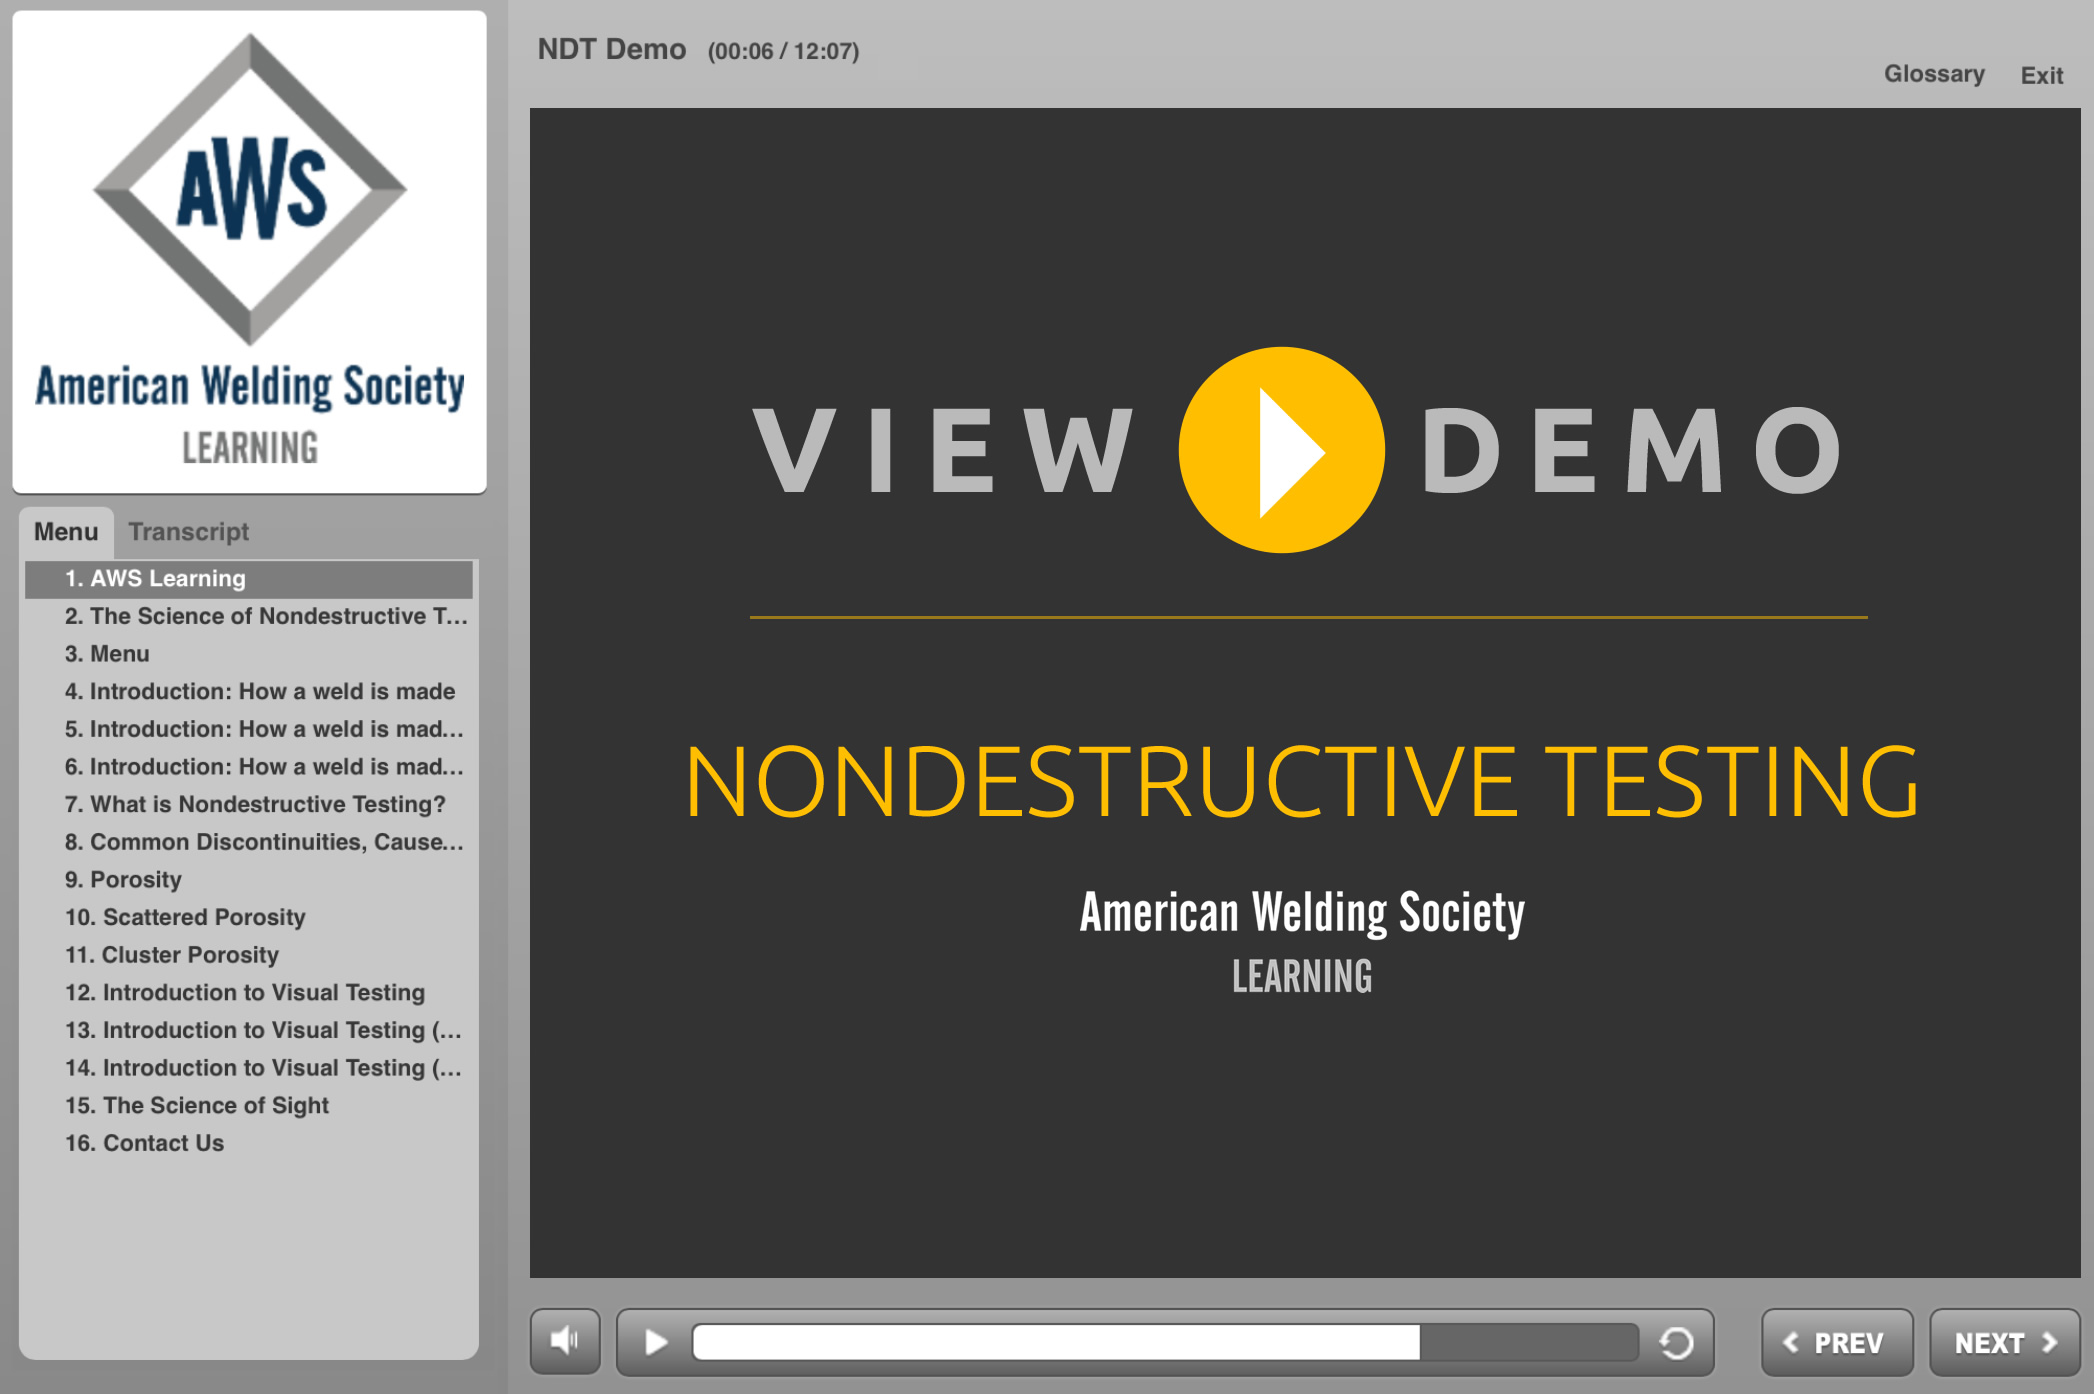 Science of Nondestructive Testing